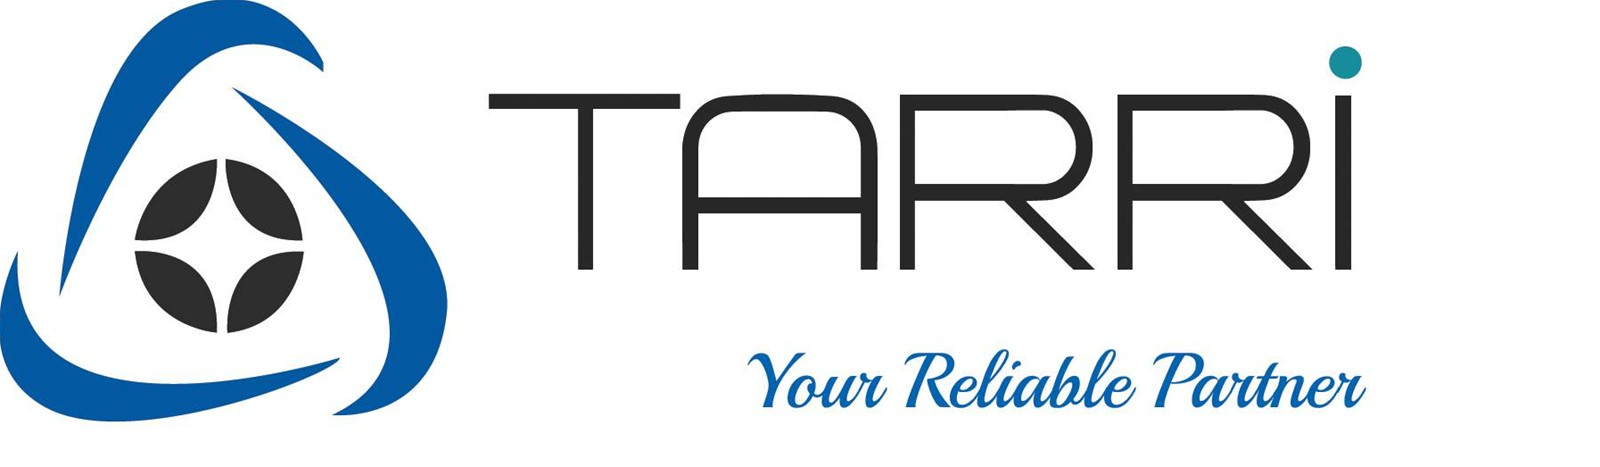 Tarri Statitech Shenzhen Co., Ltd.